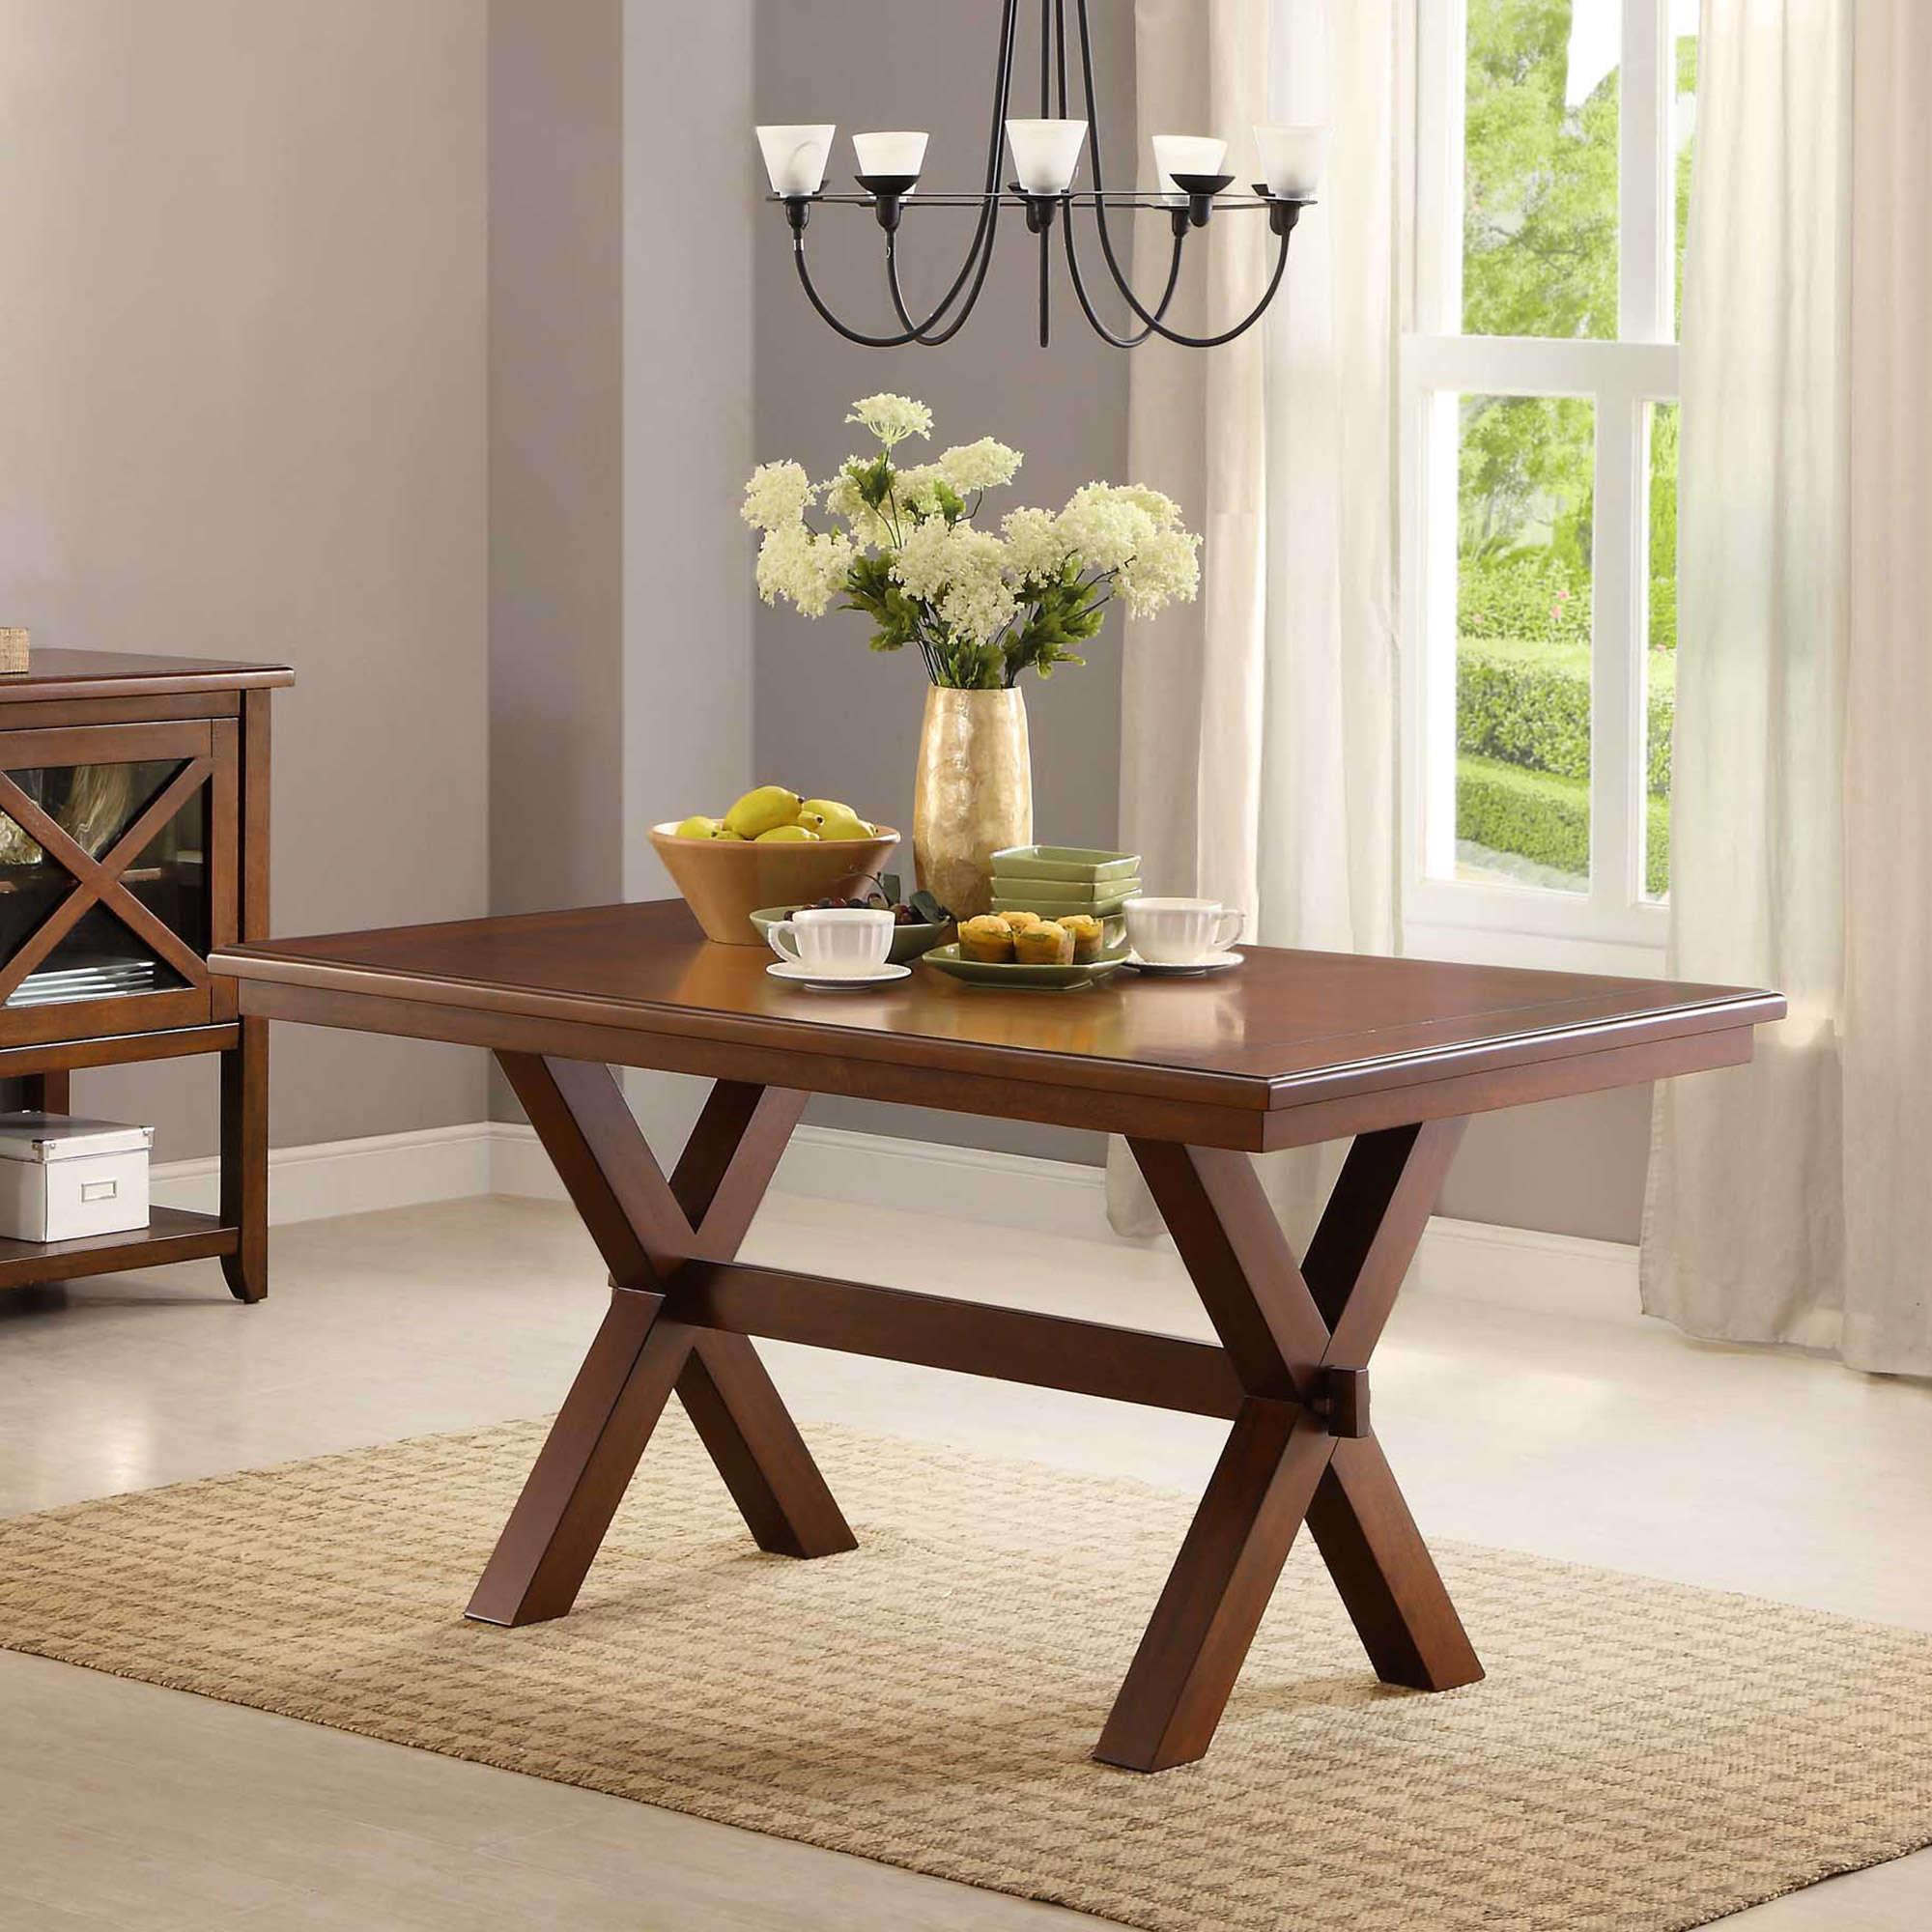 Better Homes & Gardens Maddox Crossing Dining Table, Brown